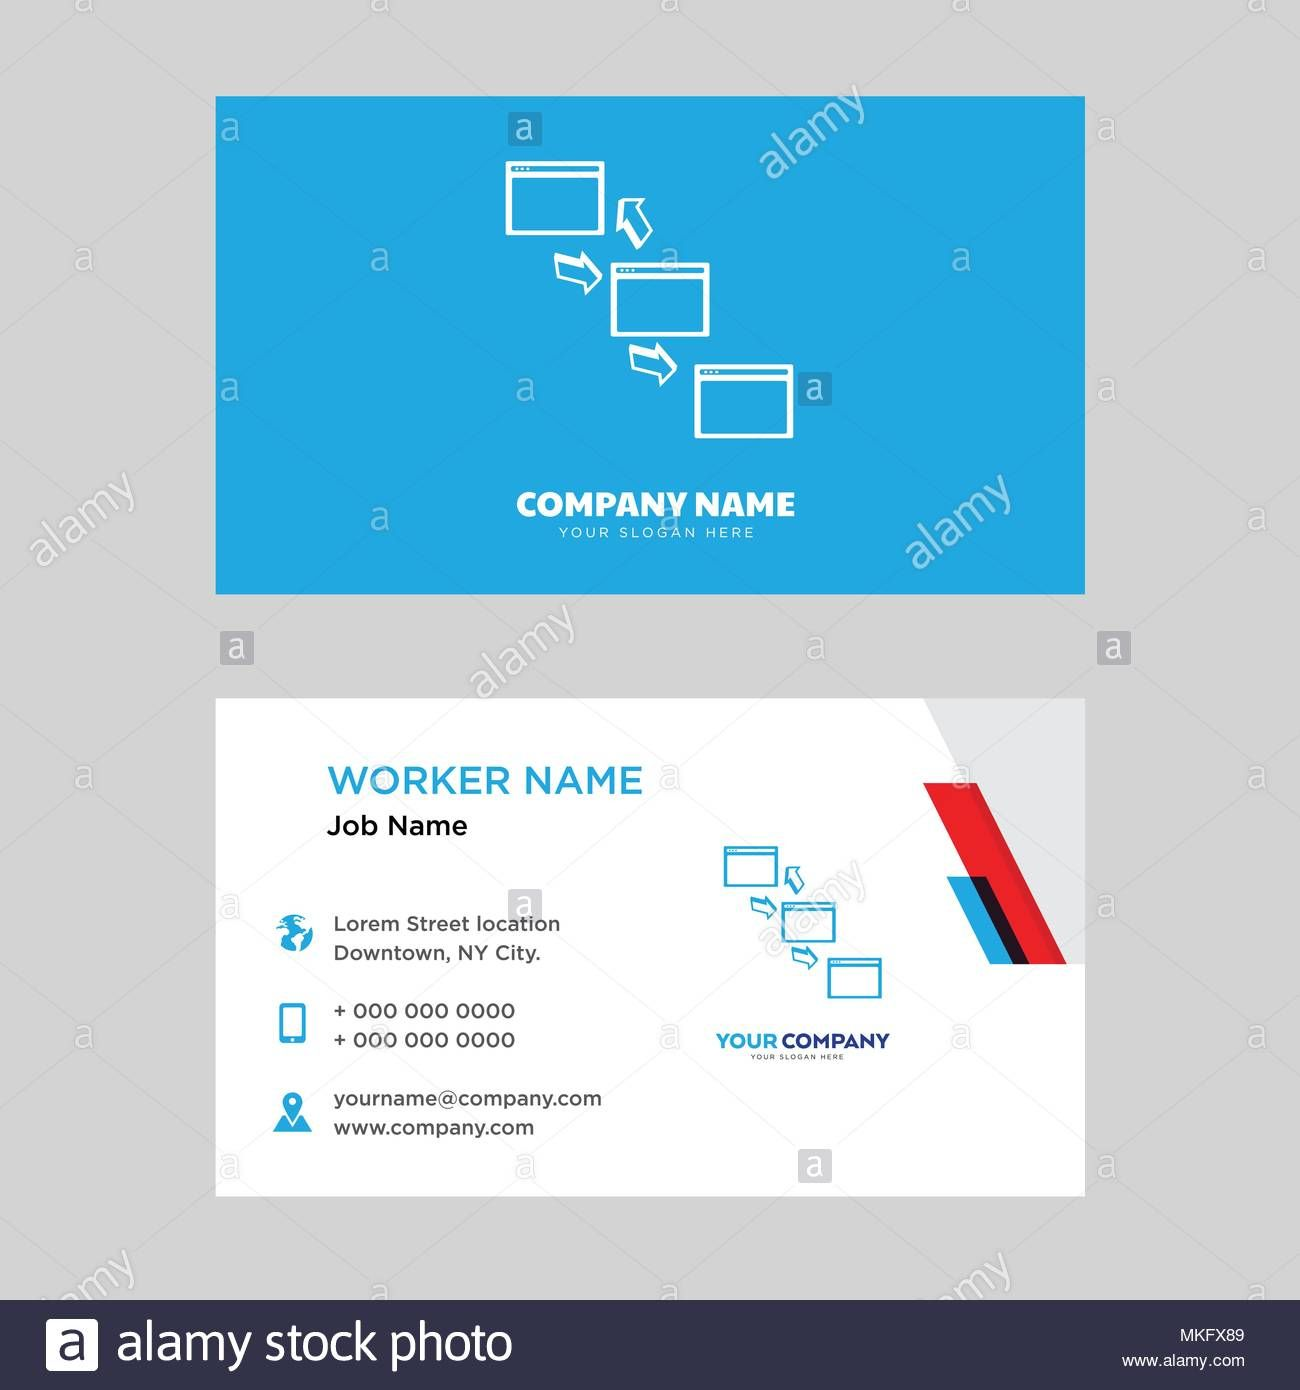 Networking Business Card Design Template Visiting For Your Pertaining To Networ Business Card Template Design Business Card Template Word Business Card Design